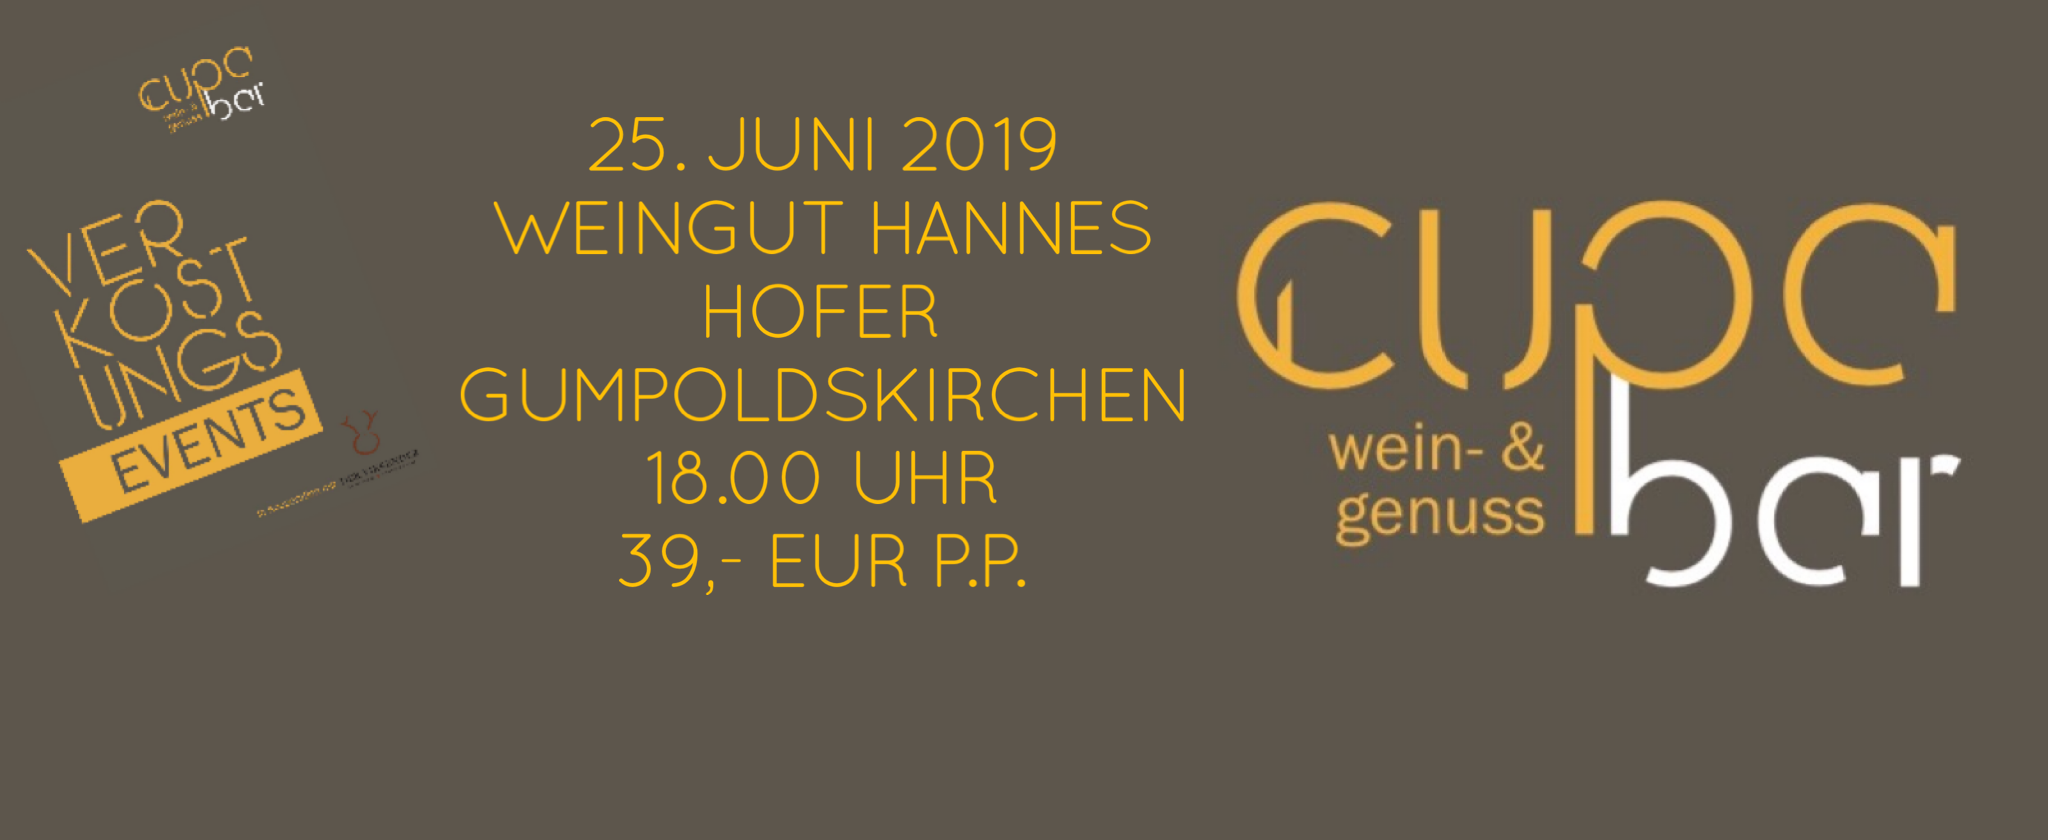 Verkostungs Events . Cupa Bar . Weingut Hannes Hofer . Gumpoldskirchen 25. Juni 2019